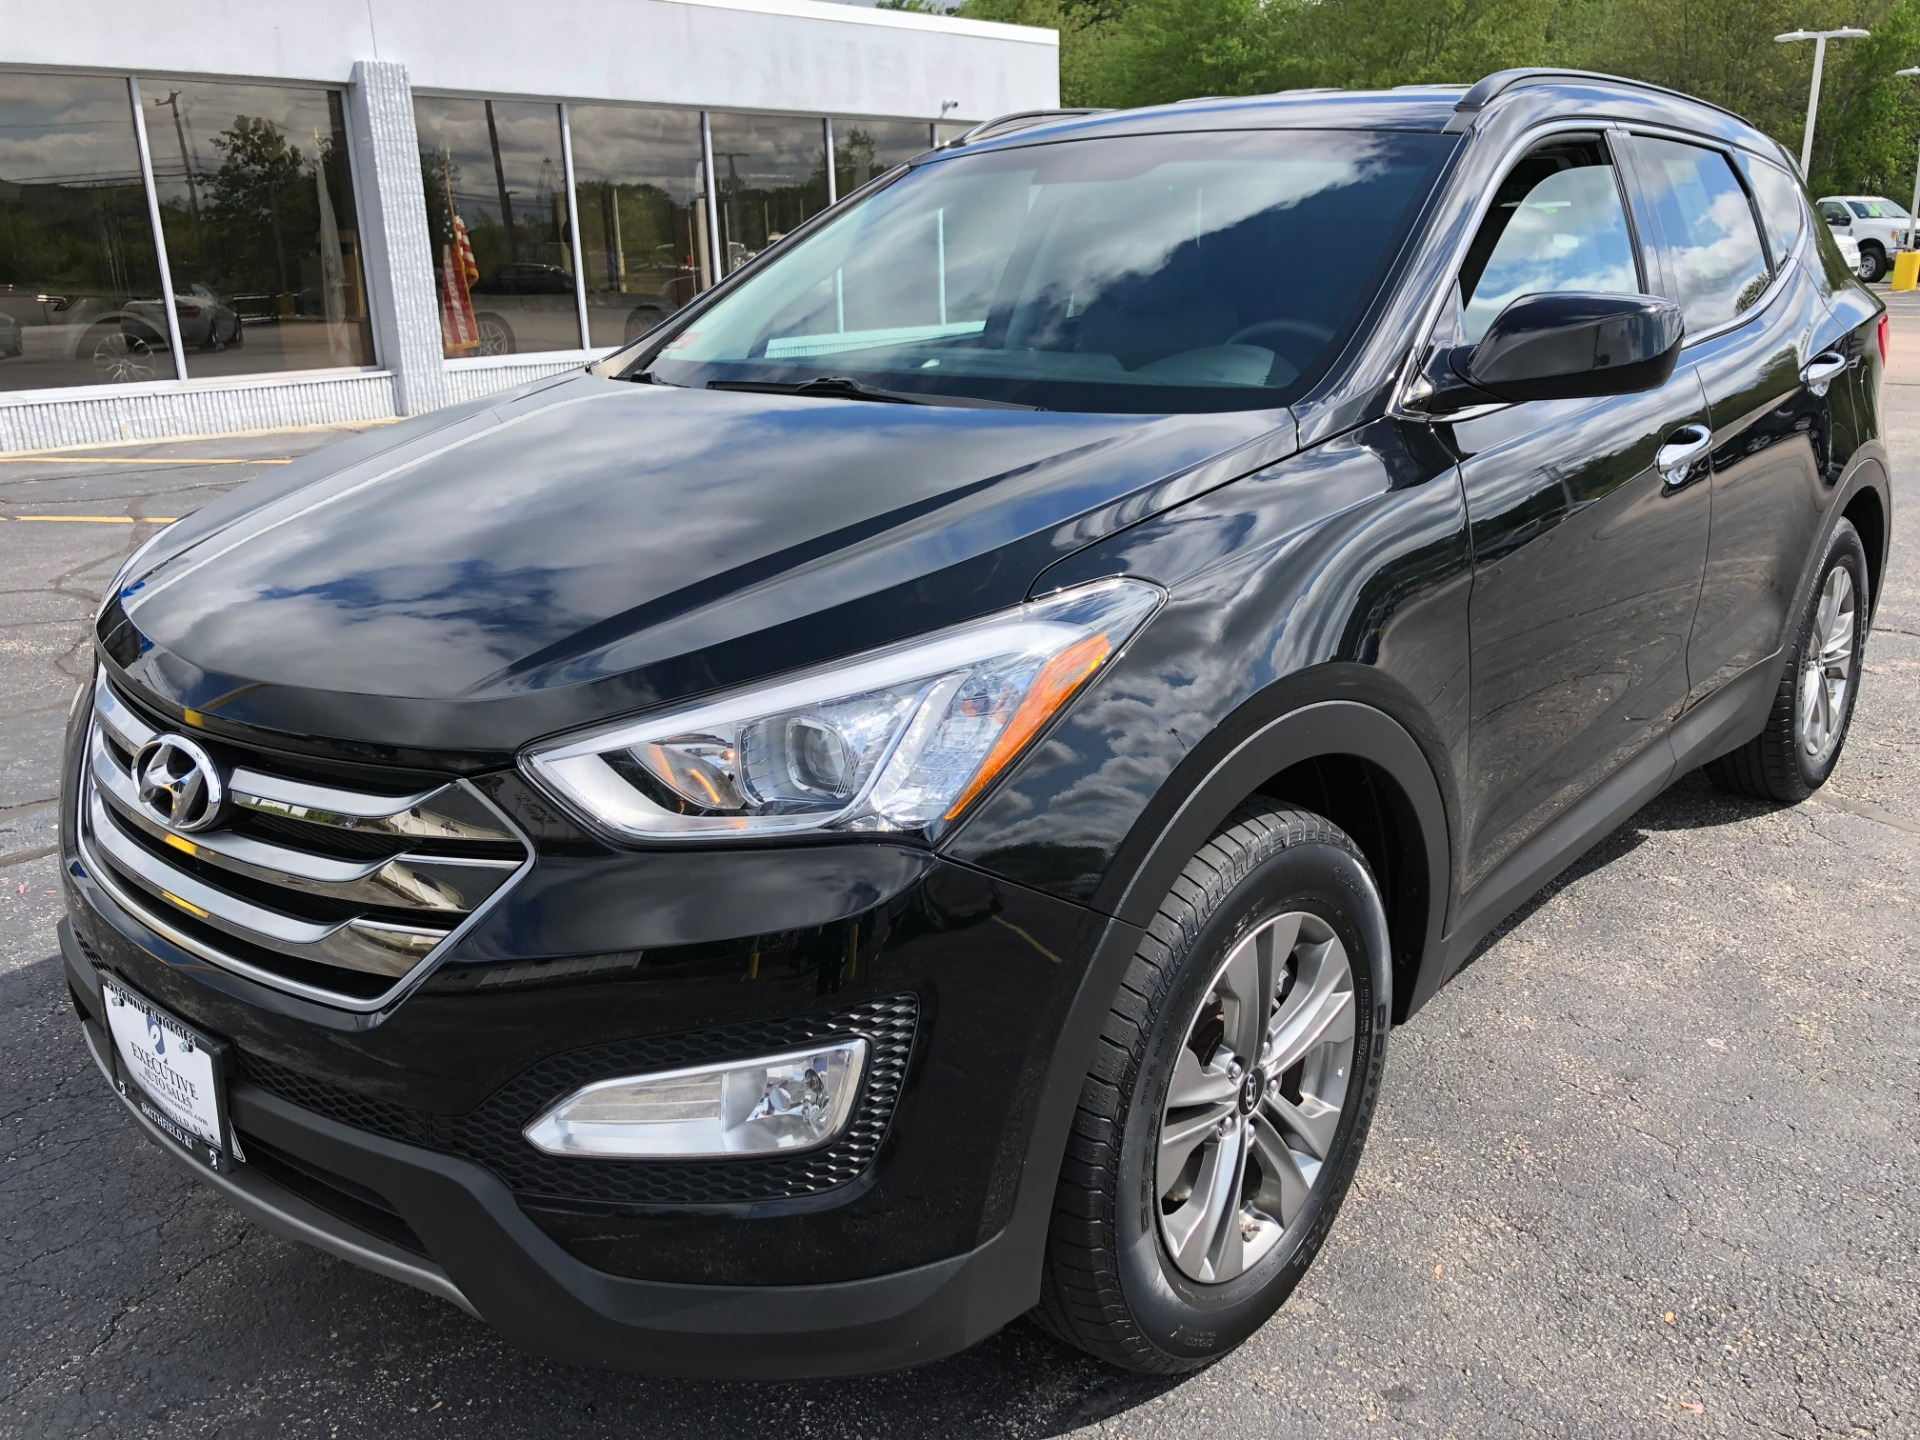 2016 hyundai santa fe sport stock 1664 for sale near smithfield ri ri hyundai dealer. Black Bedroom Furniture Sets. Home Design Ideas